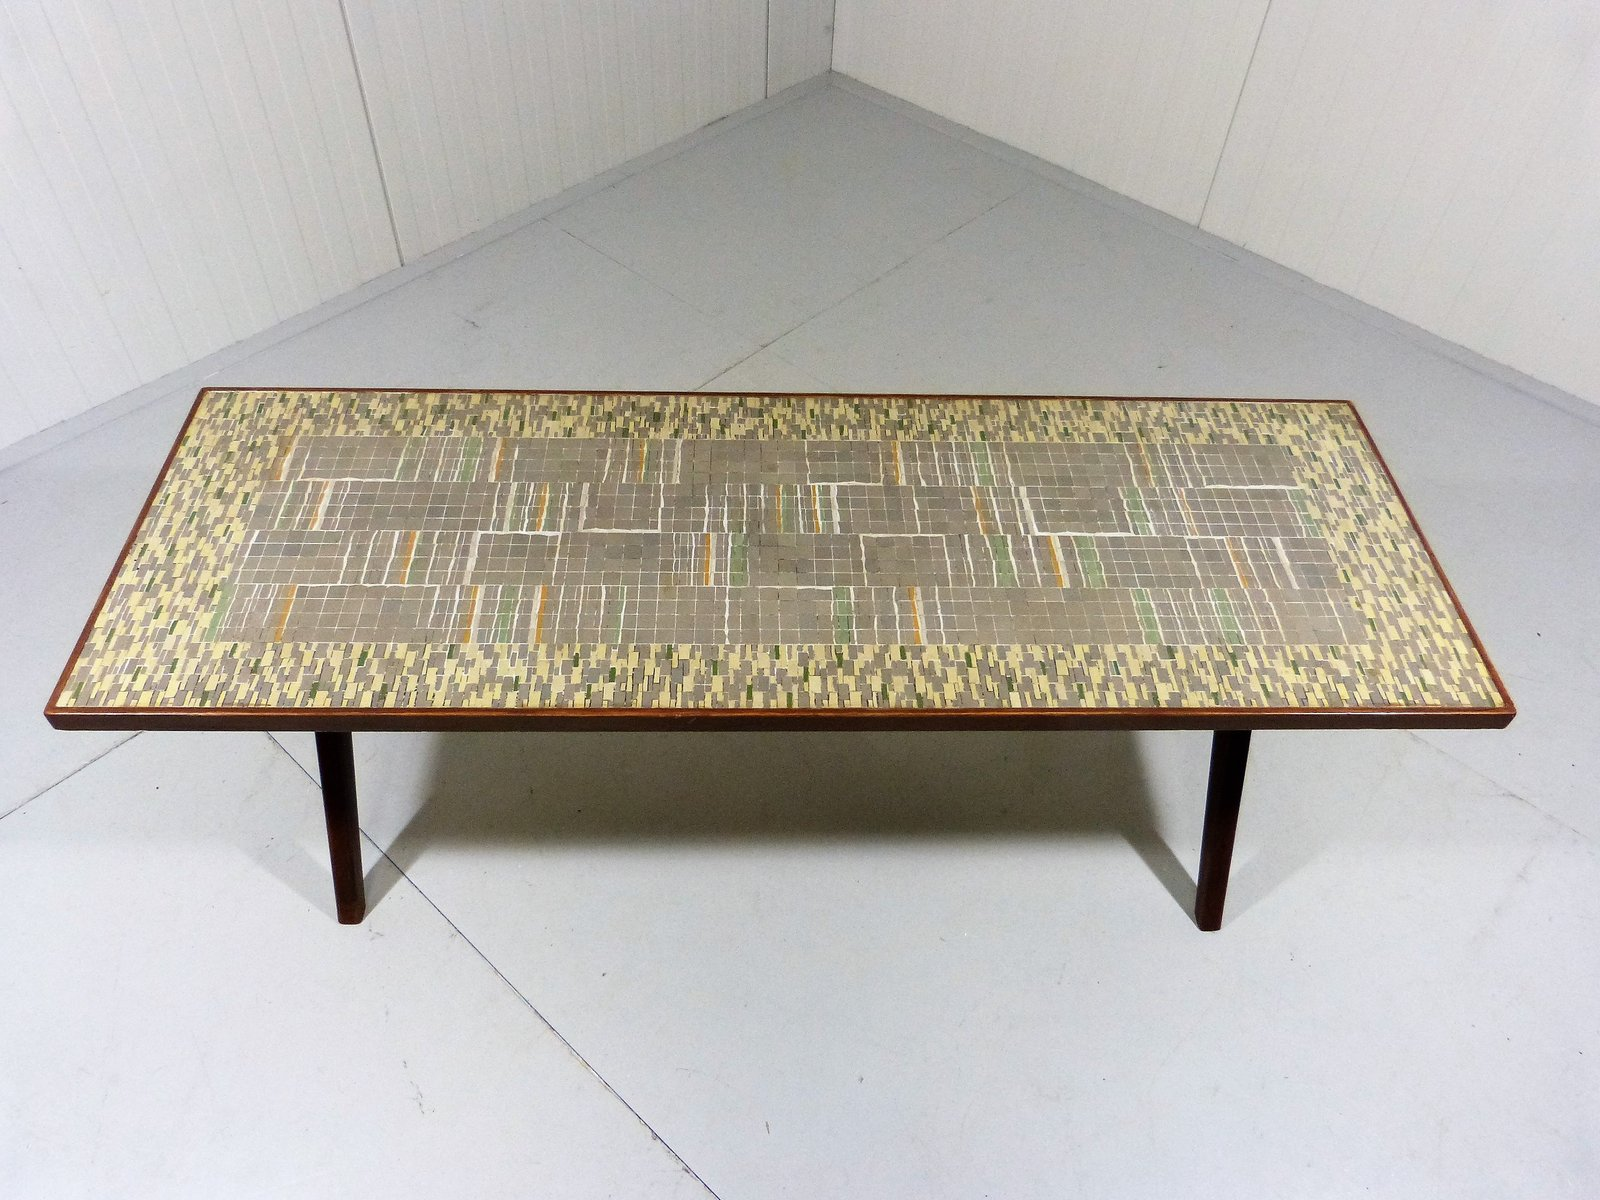 Mosaic Coffee Table By Berthold Müller Oerlinghausen, 1950s